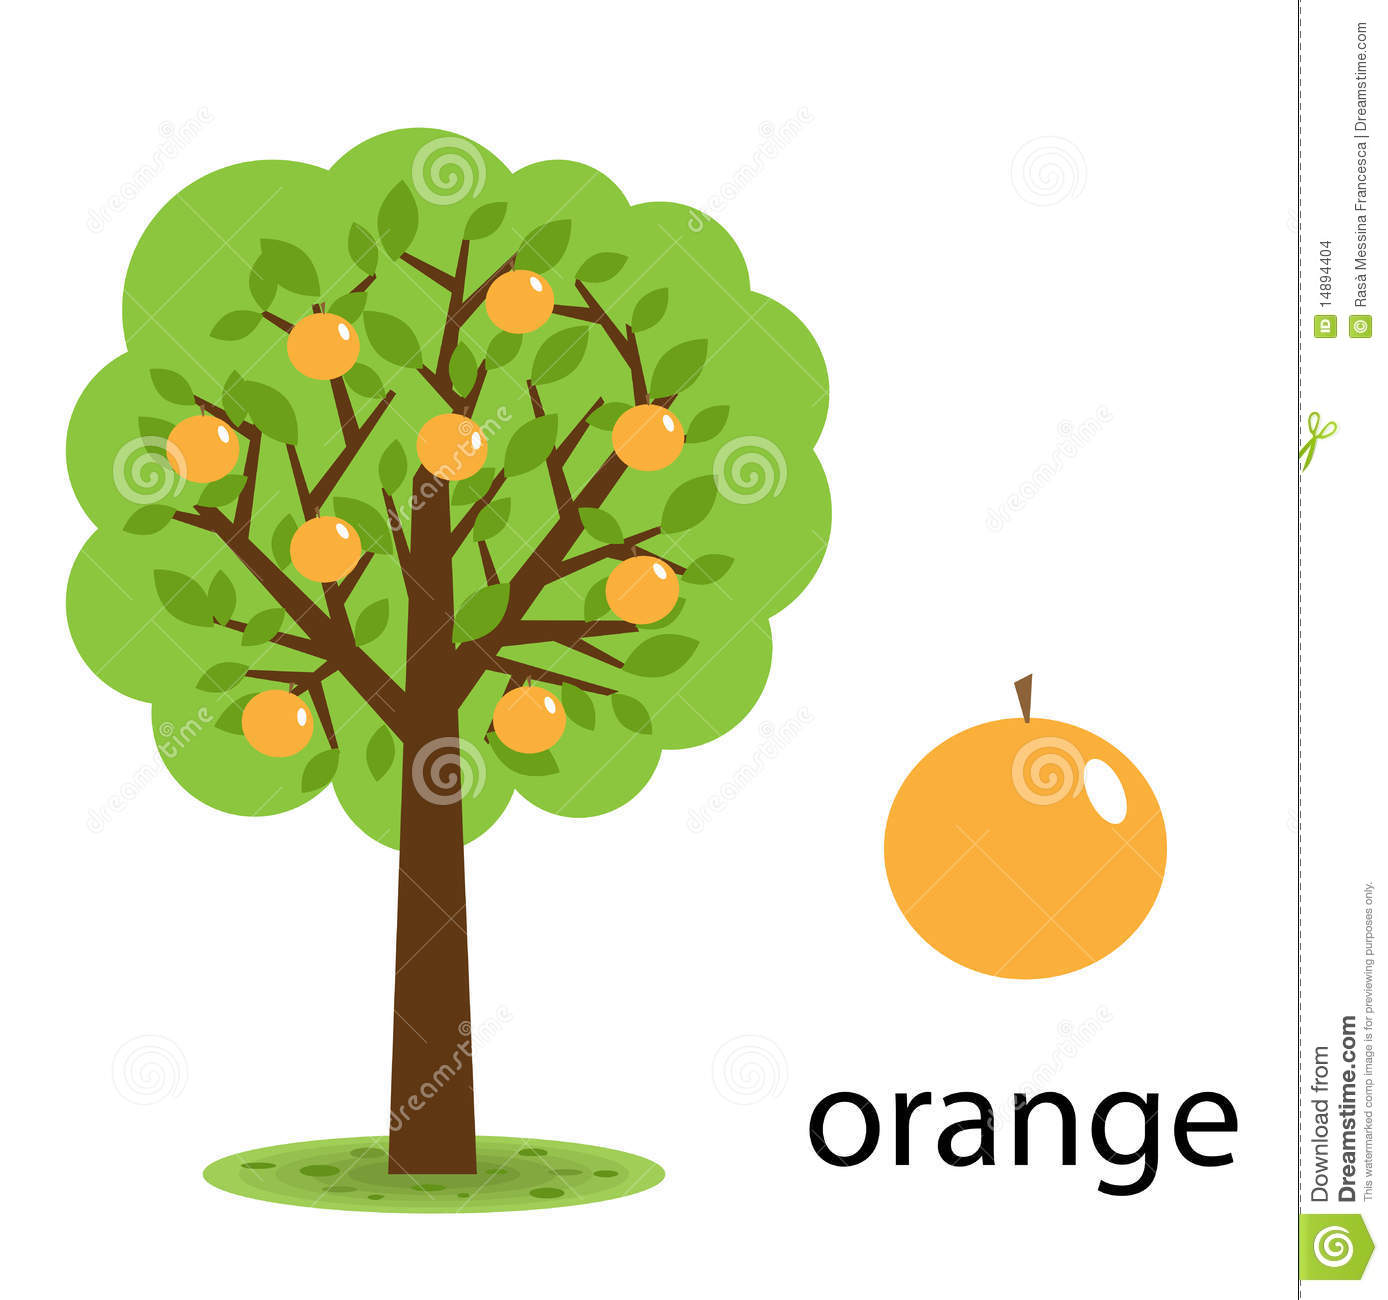 Orange tree stock vector. Image of abstract, natural ...